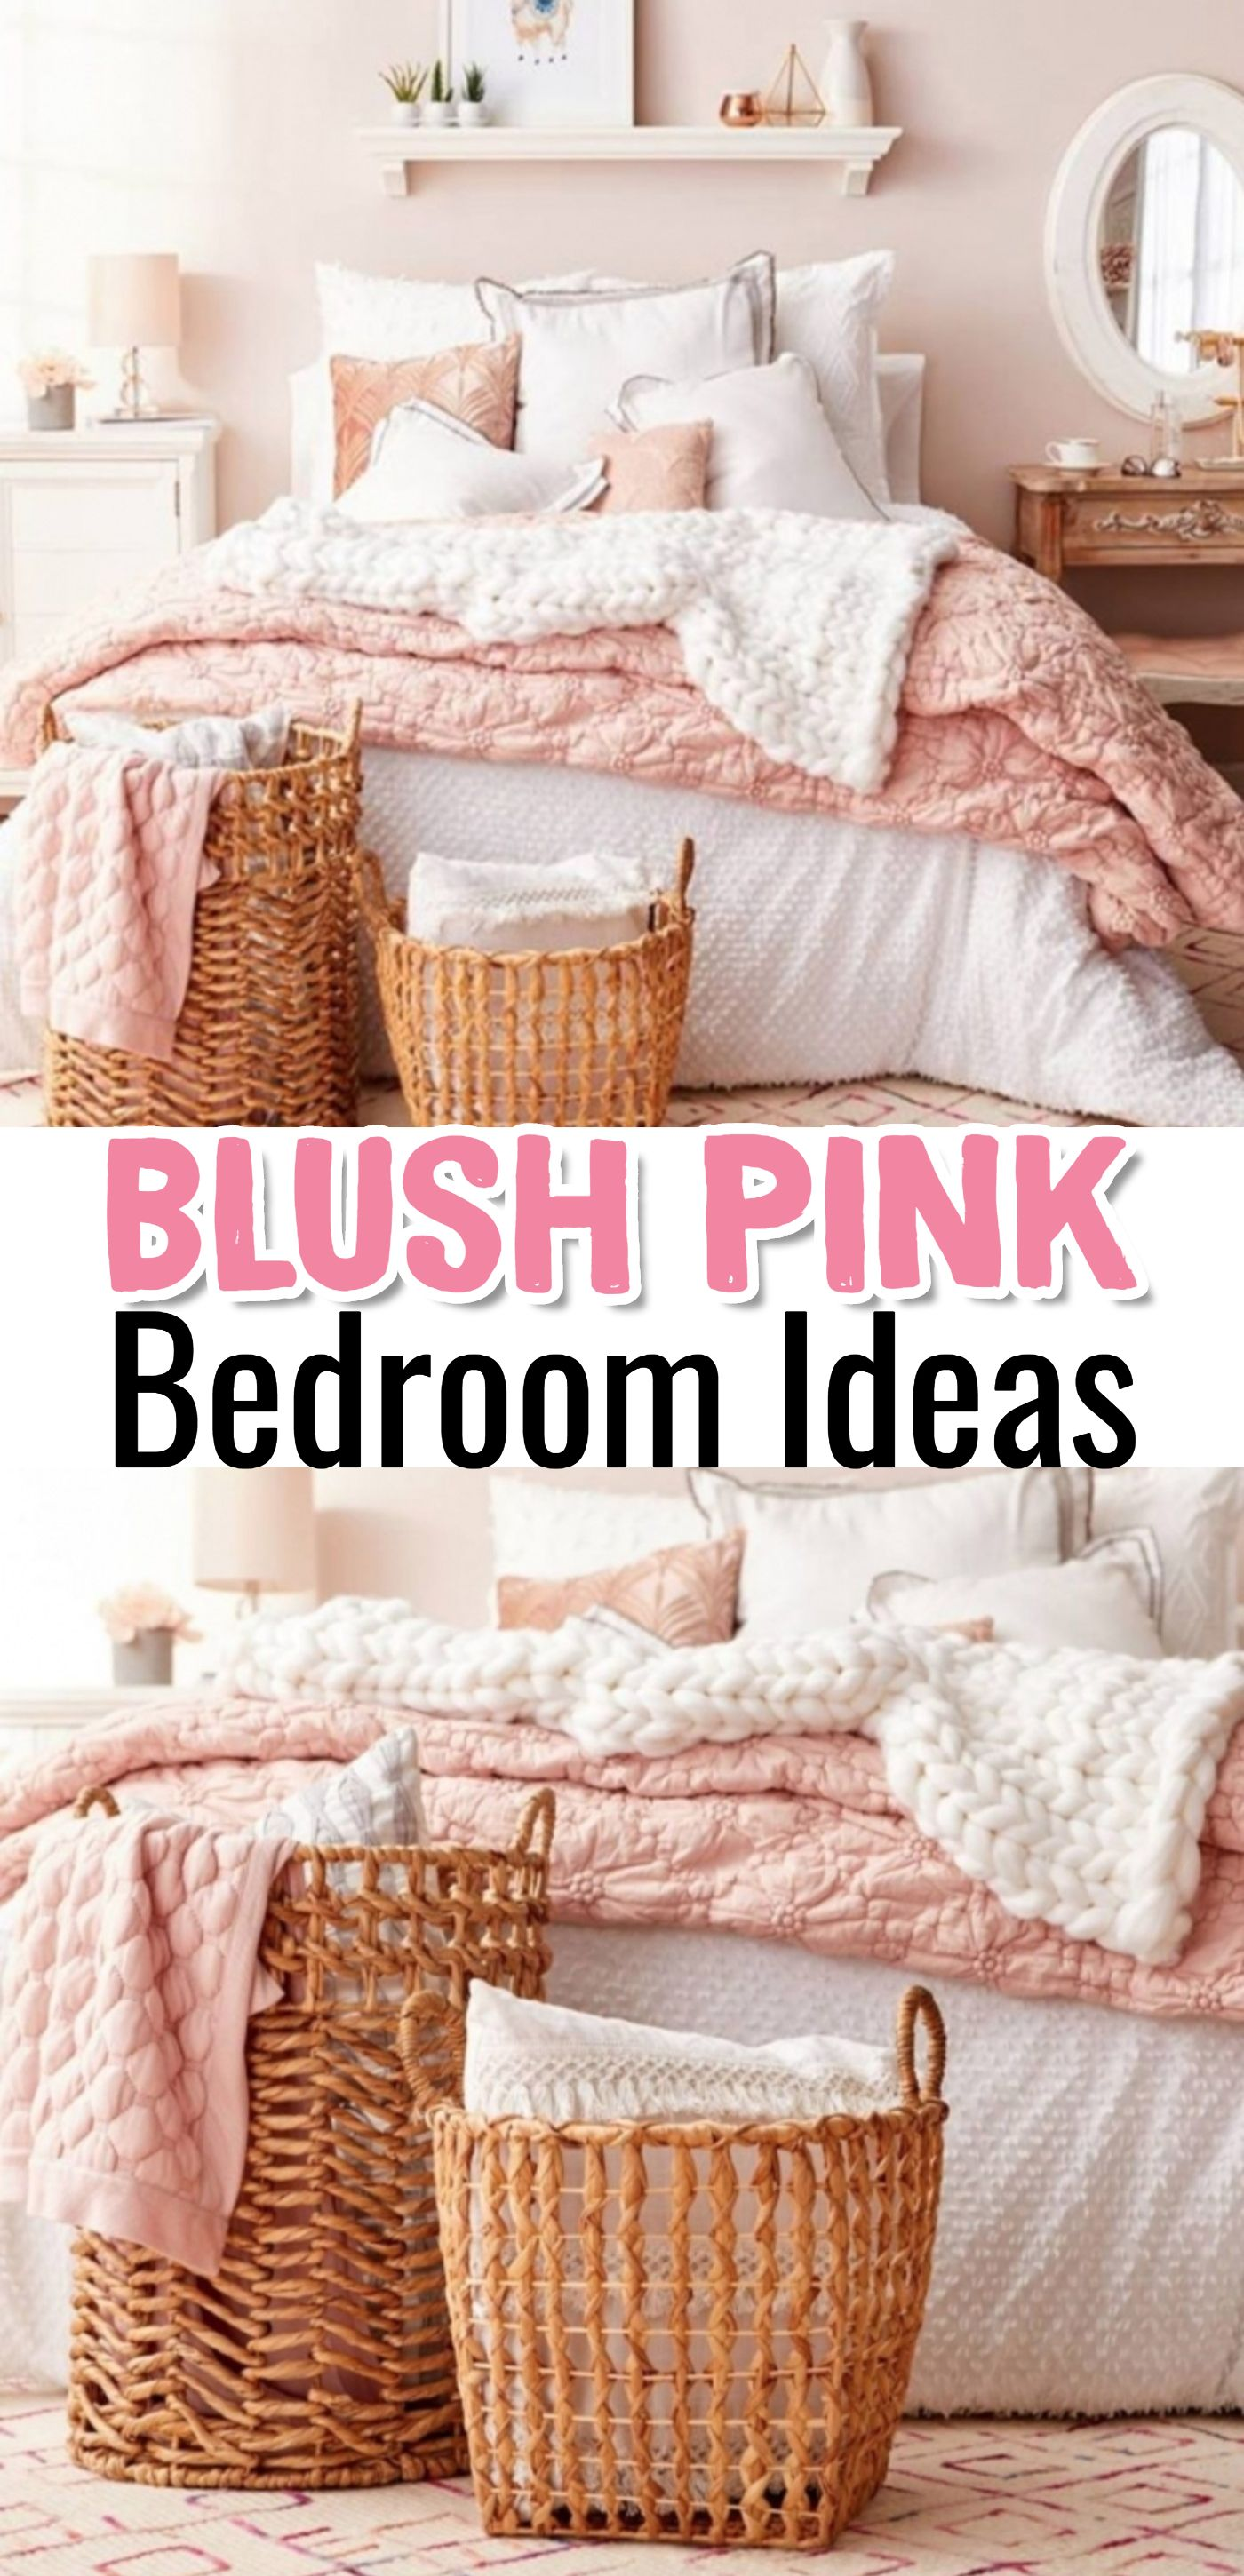 Blush Pink Bedroom Ideas - Dusty Rose Bedroom Decor and Bedding I ...